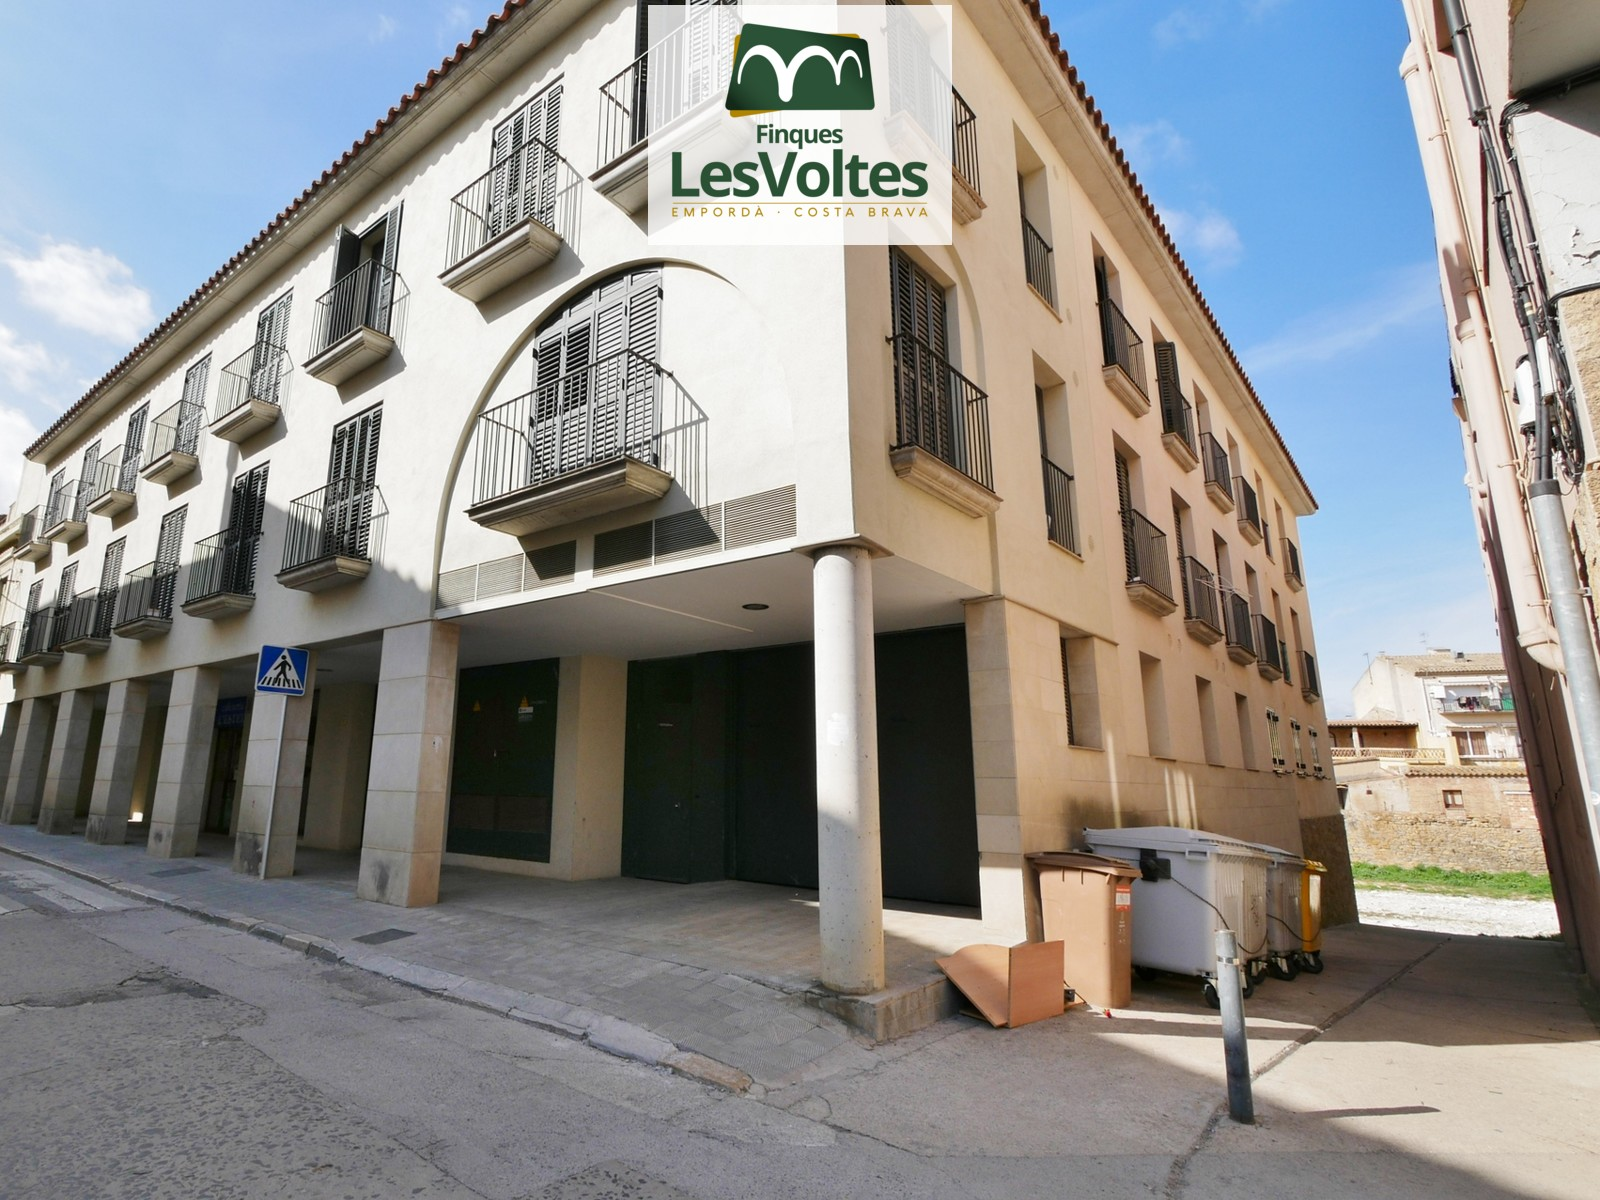 FLAT OF 71 M2 IN FIRST FLOOR WITH ELEVATOR WITH 3 ROOMS AND PARKING SPACE  FOR SALE IN THE CENTER OF LA BISBAL D'EMPORDÀ.